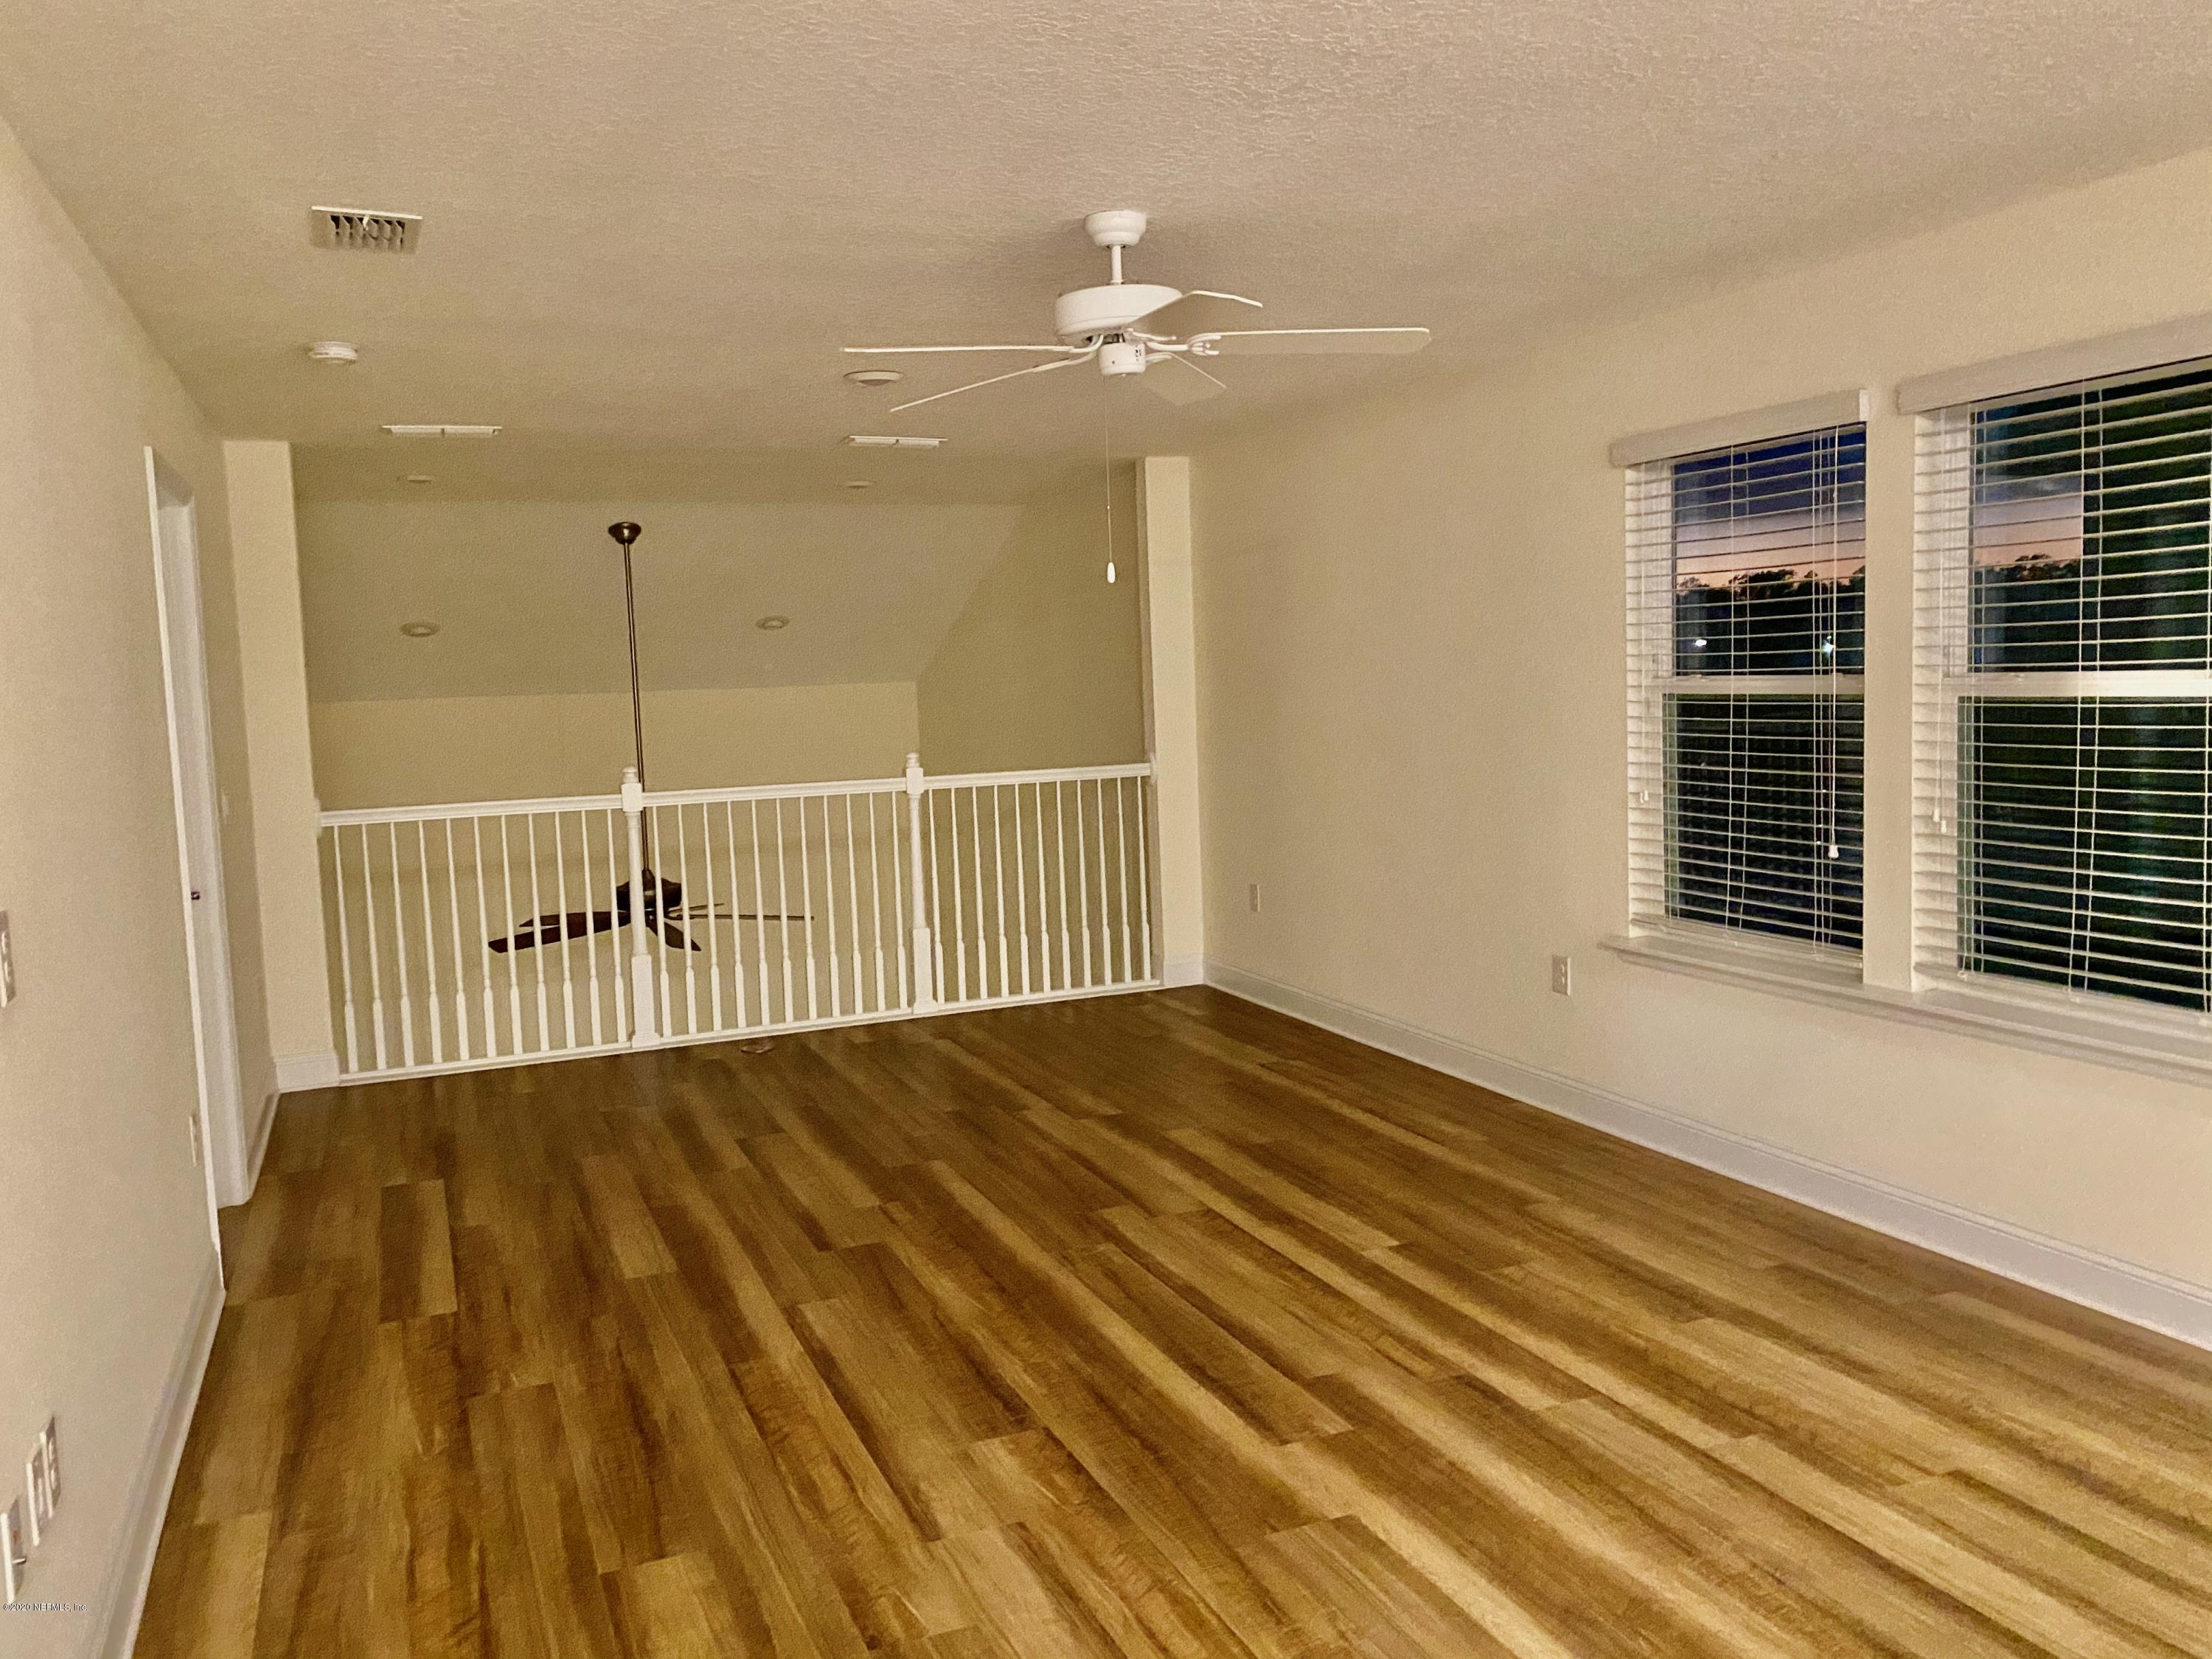 103 CLIFTON BAY, ST JOHNS, FLORIDA 32259, 3 Bedrooms Bedrooms, ,2 BathroomsBathrooms,Rental,For Rent,CLIFTON BAY,1082809